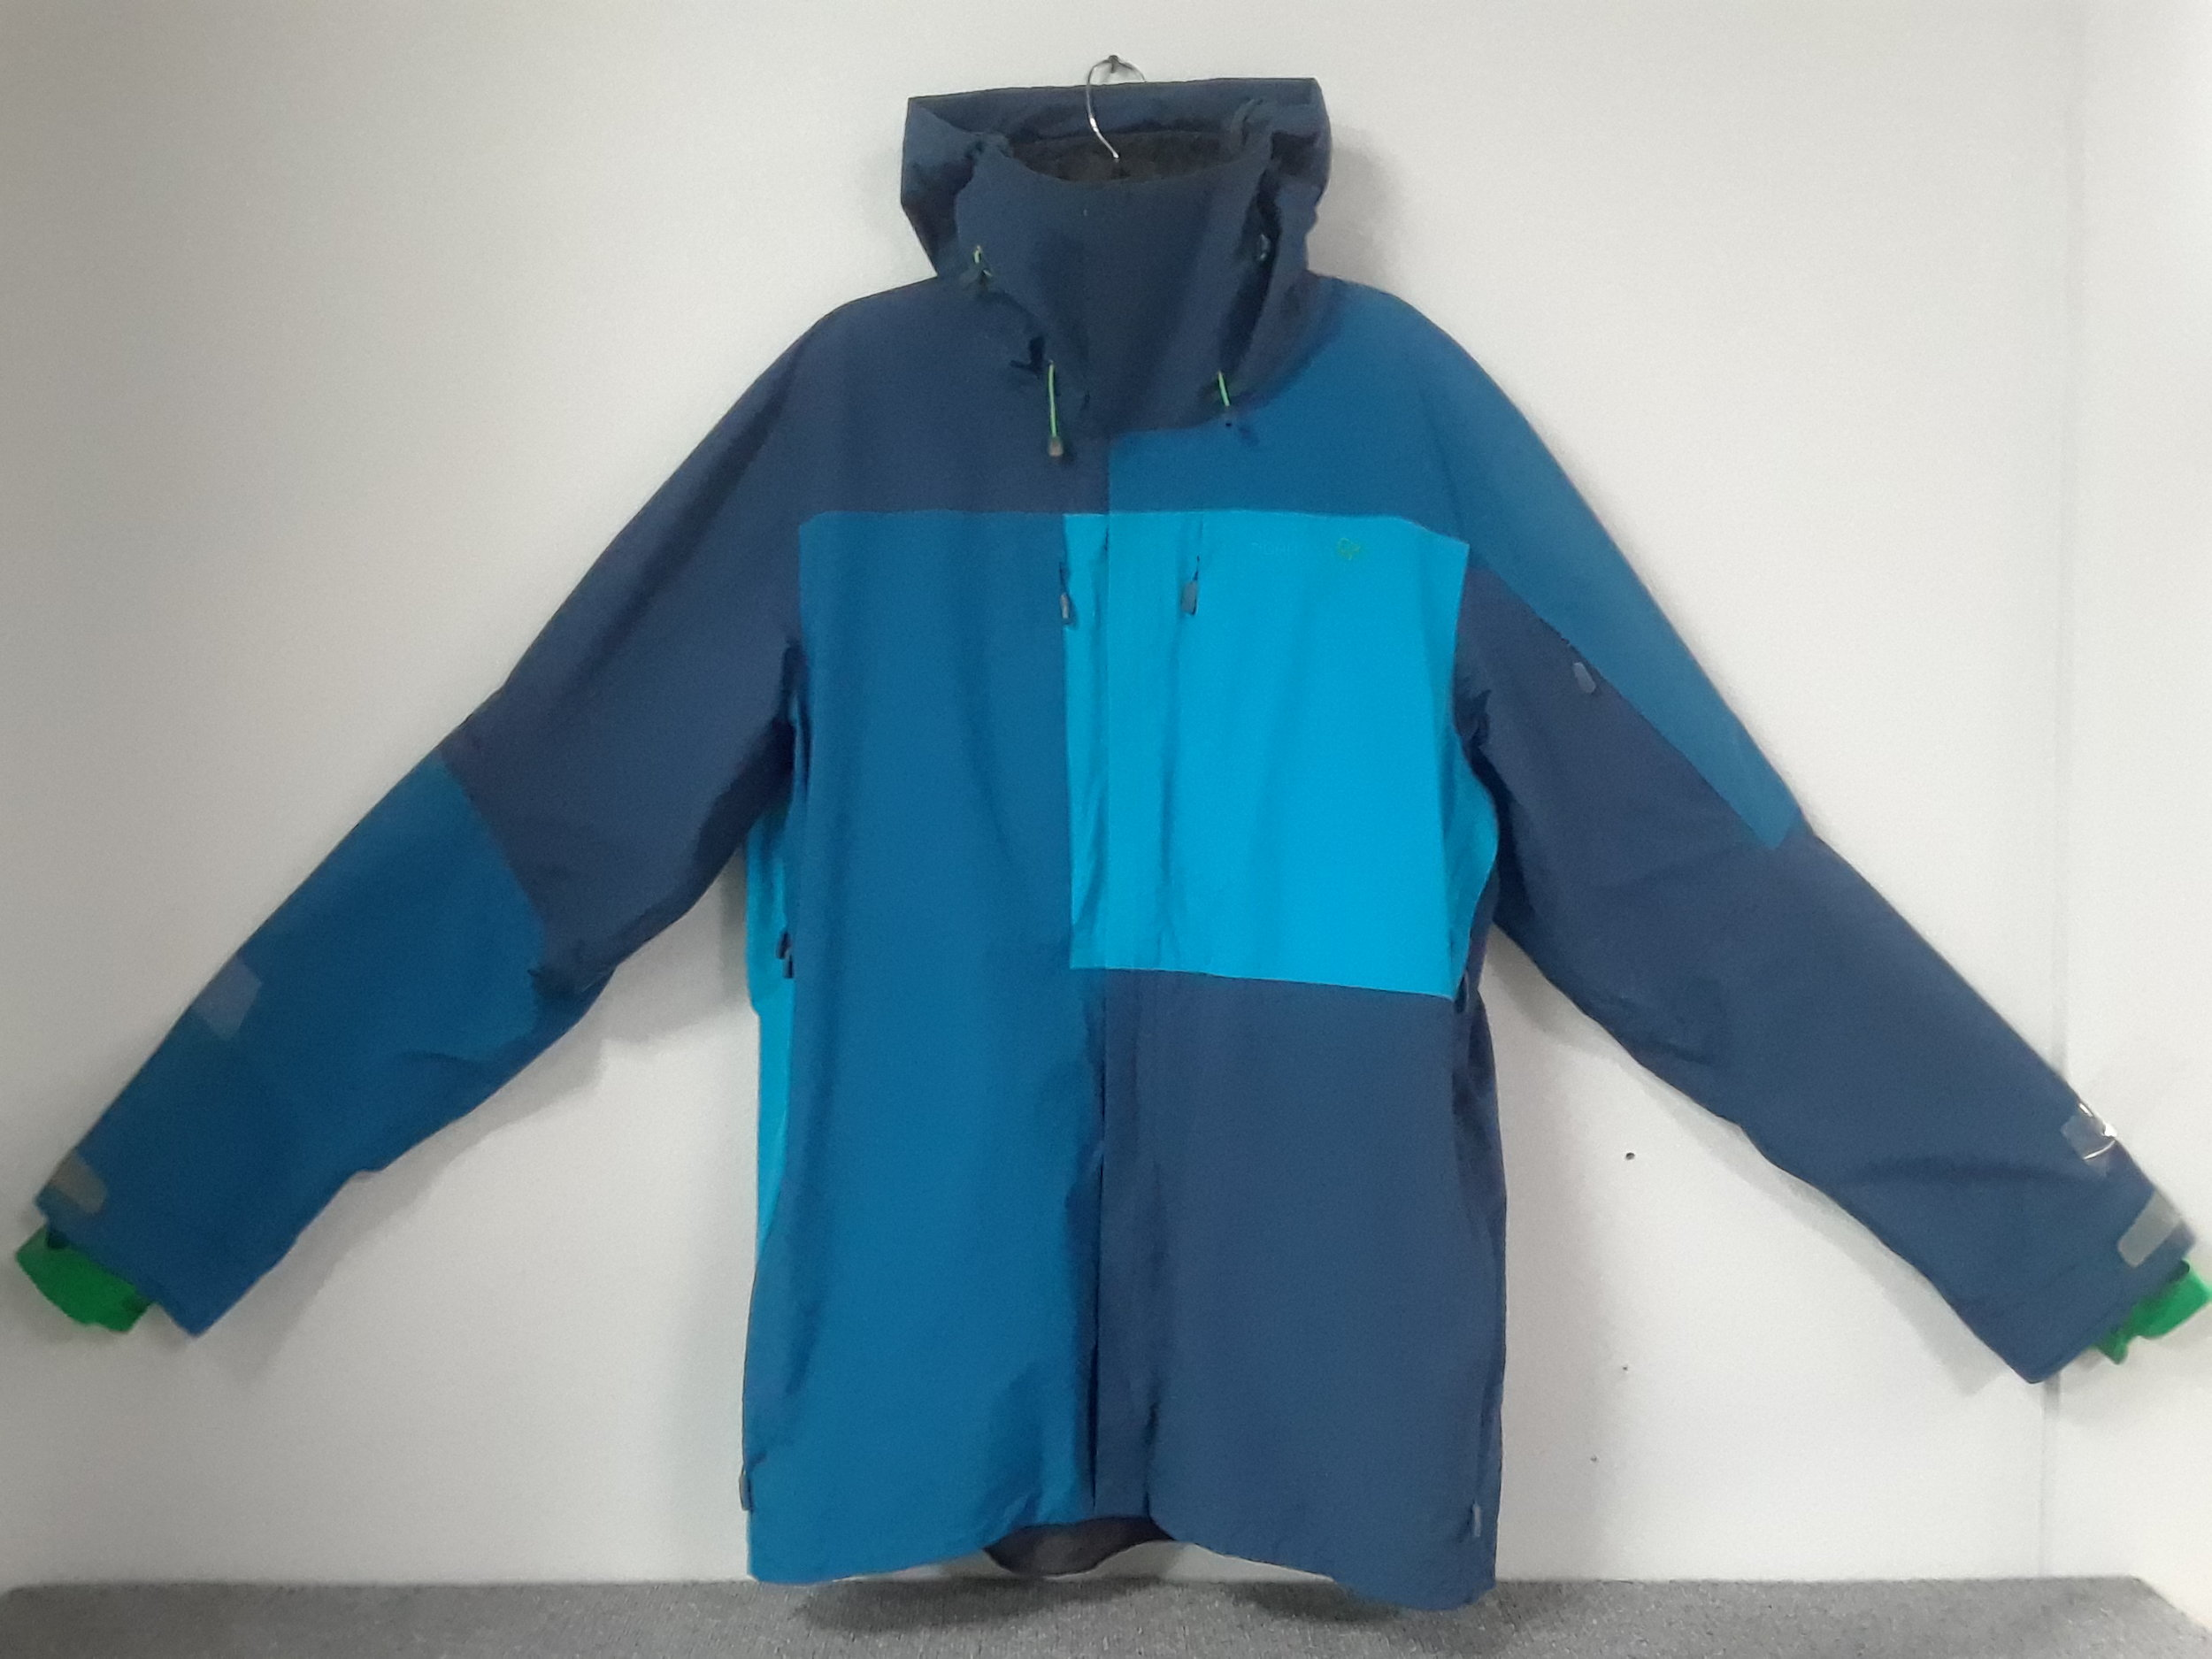 Don't fear the winter with the Norrona Narvik jacket with Gore-Tex fabric. MSRP is listed at $600 and we have it priced at $199. The size is a men's XXL.